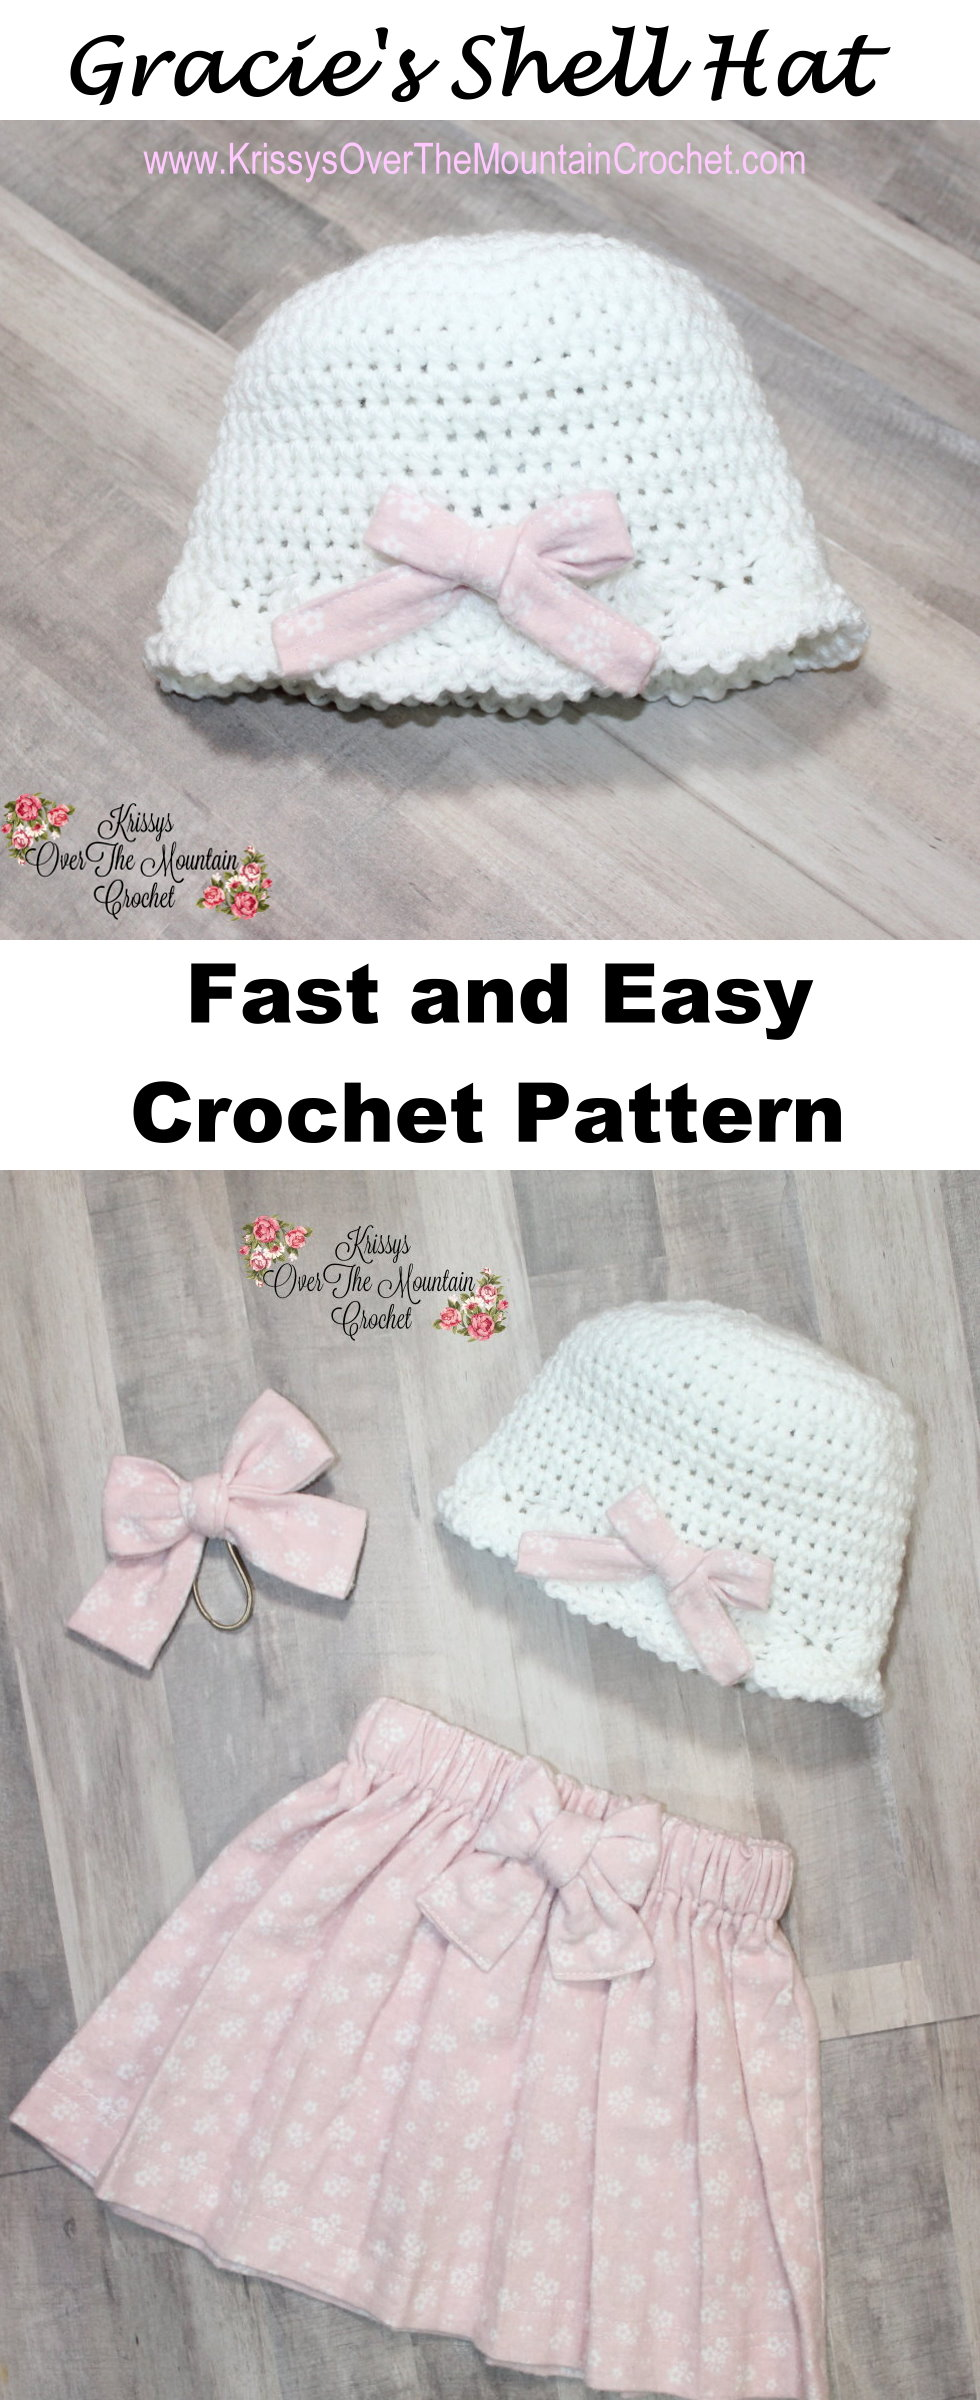 Gracie's shell hat is perfect for winter and spring. Such a fast and easy crochet design!